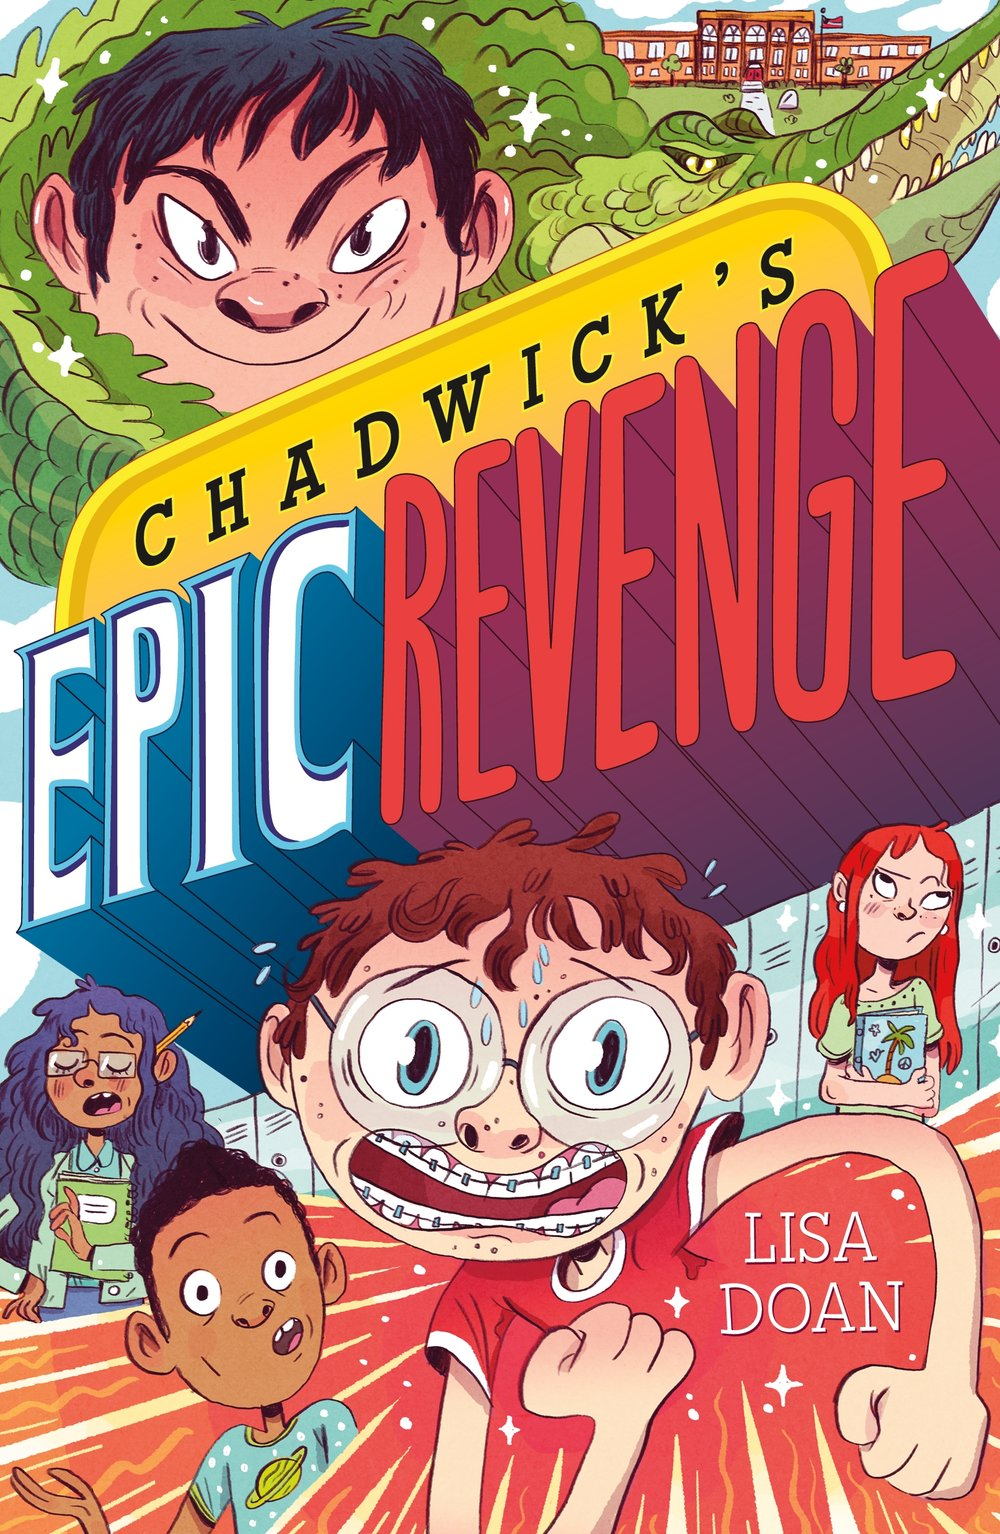 Chadwick's Epic Revenge , Lisa Doan  For Roaring Brook Press. Illustration by  Natalie Andrewson , lettering by Aimee Fleck.